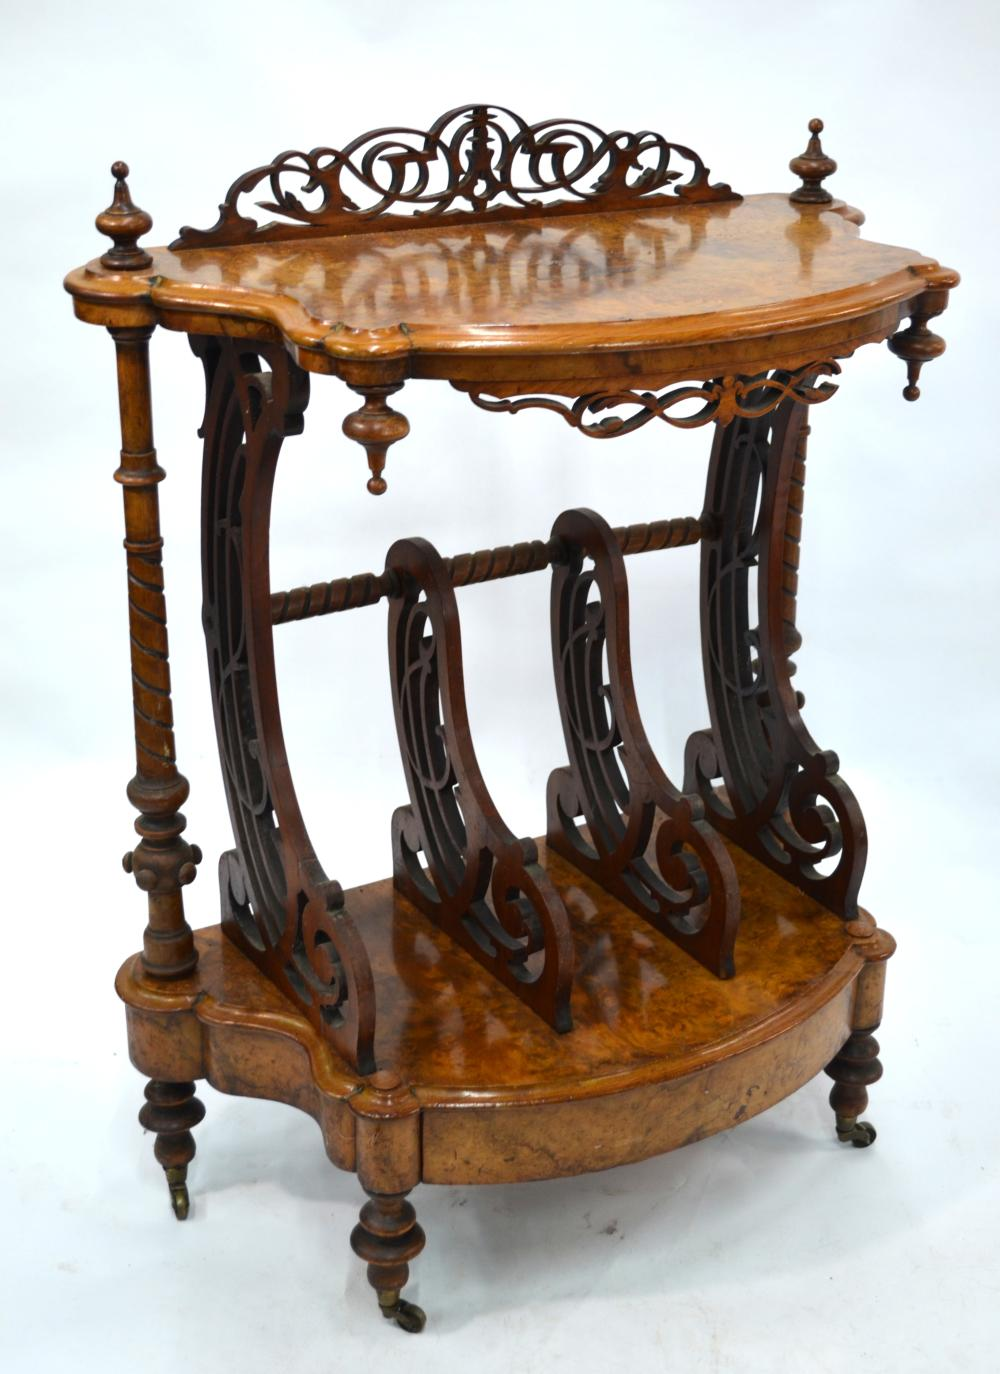 A Victorian burr walnut two tier what-not of serpentine form